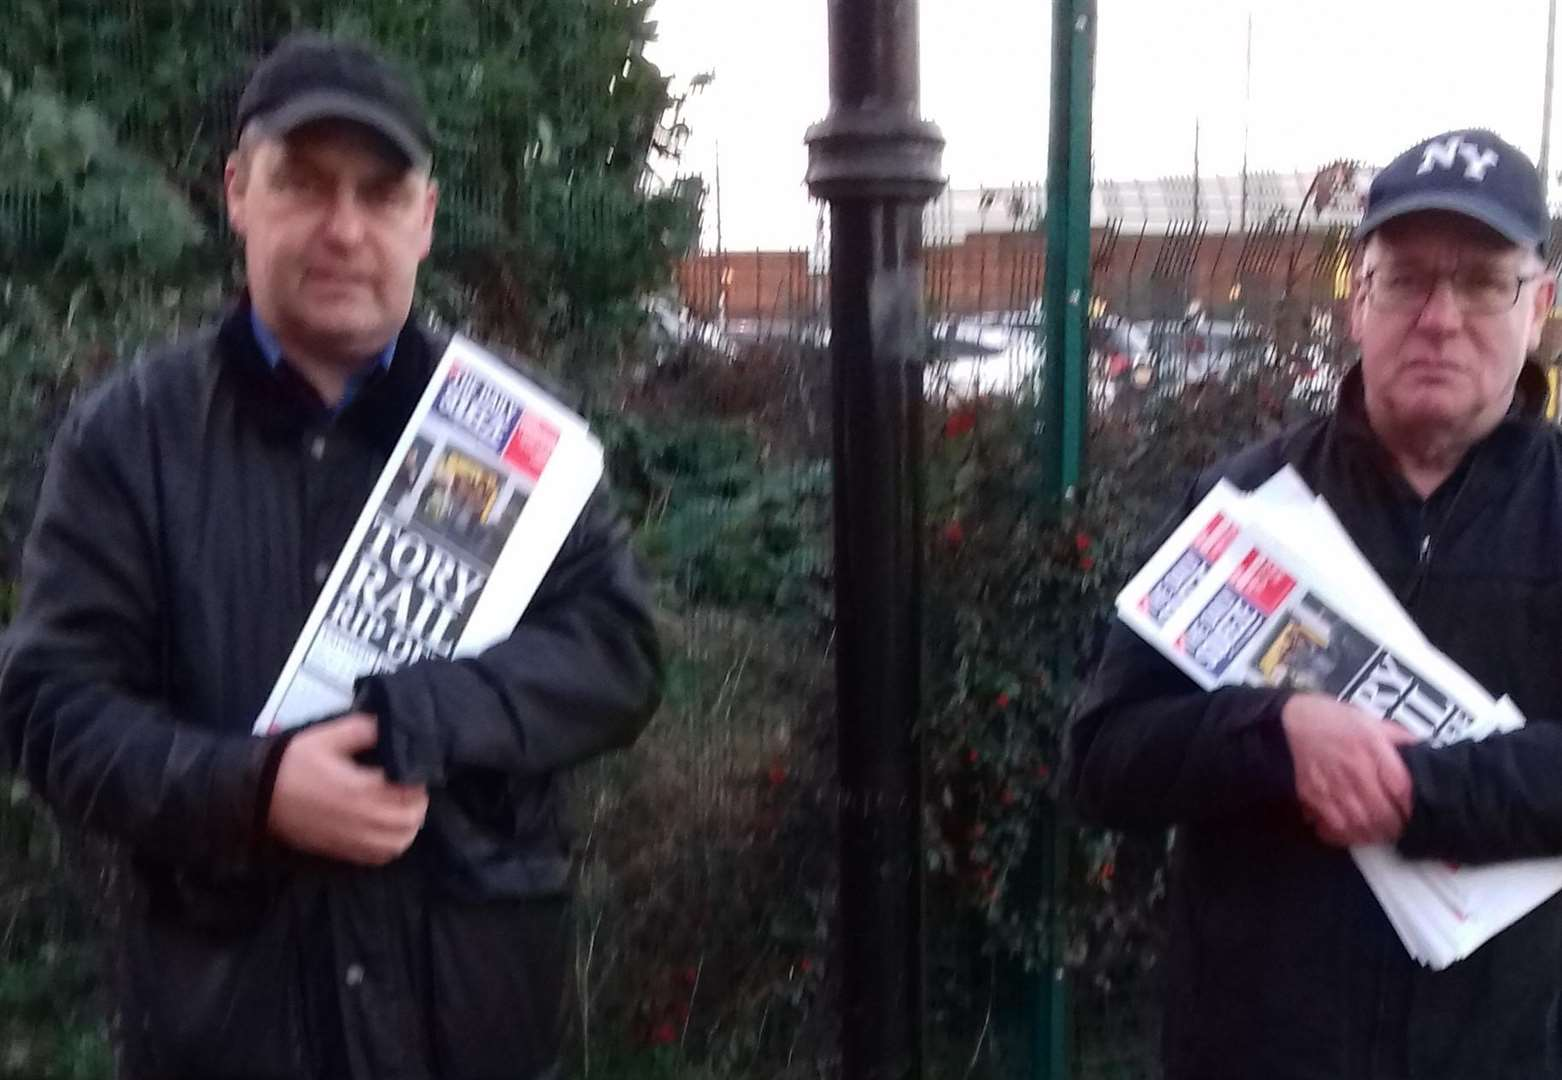 Protesters voice their anger at rail fare rise at Grantham Station